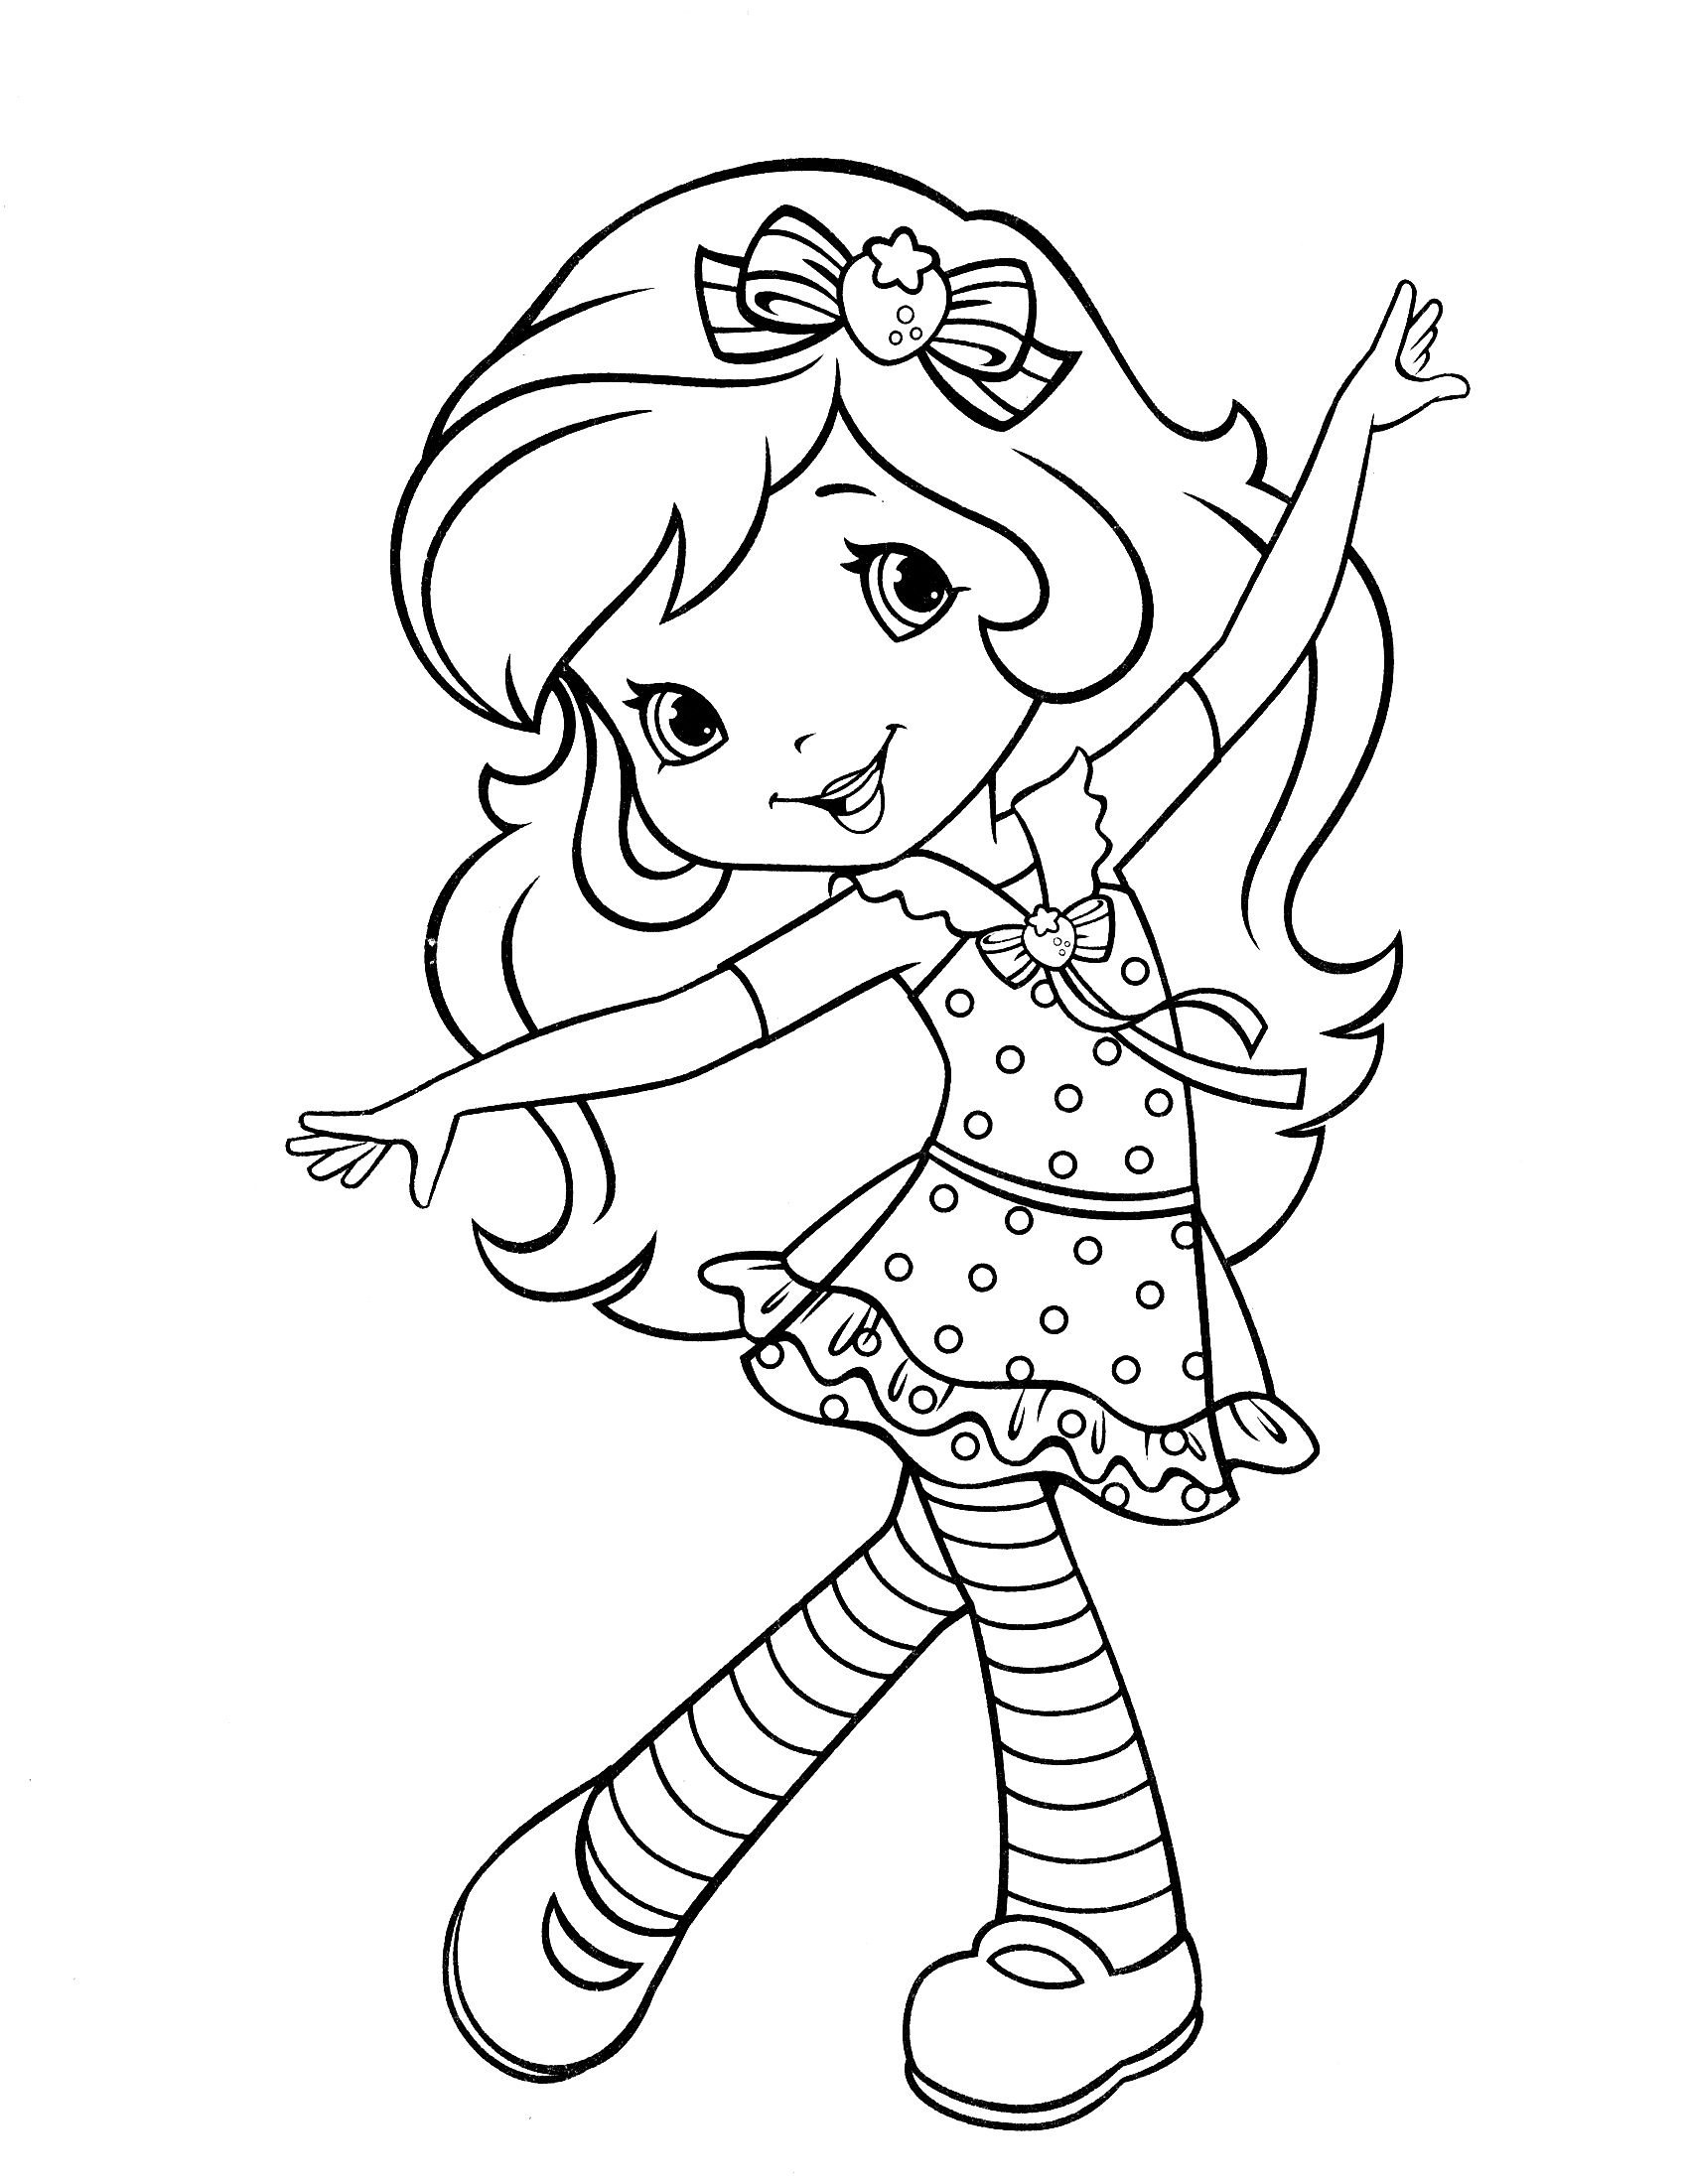 strawberry shortcake coloring pages - Pesquisa Google | Kifestő ...